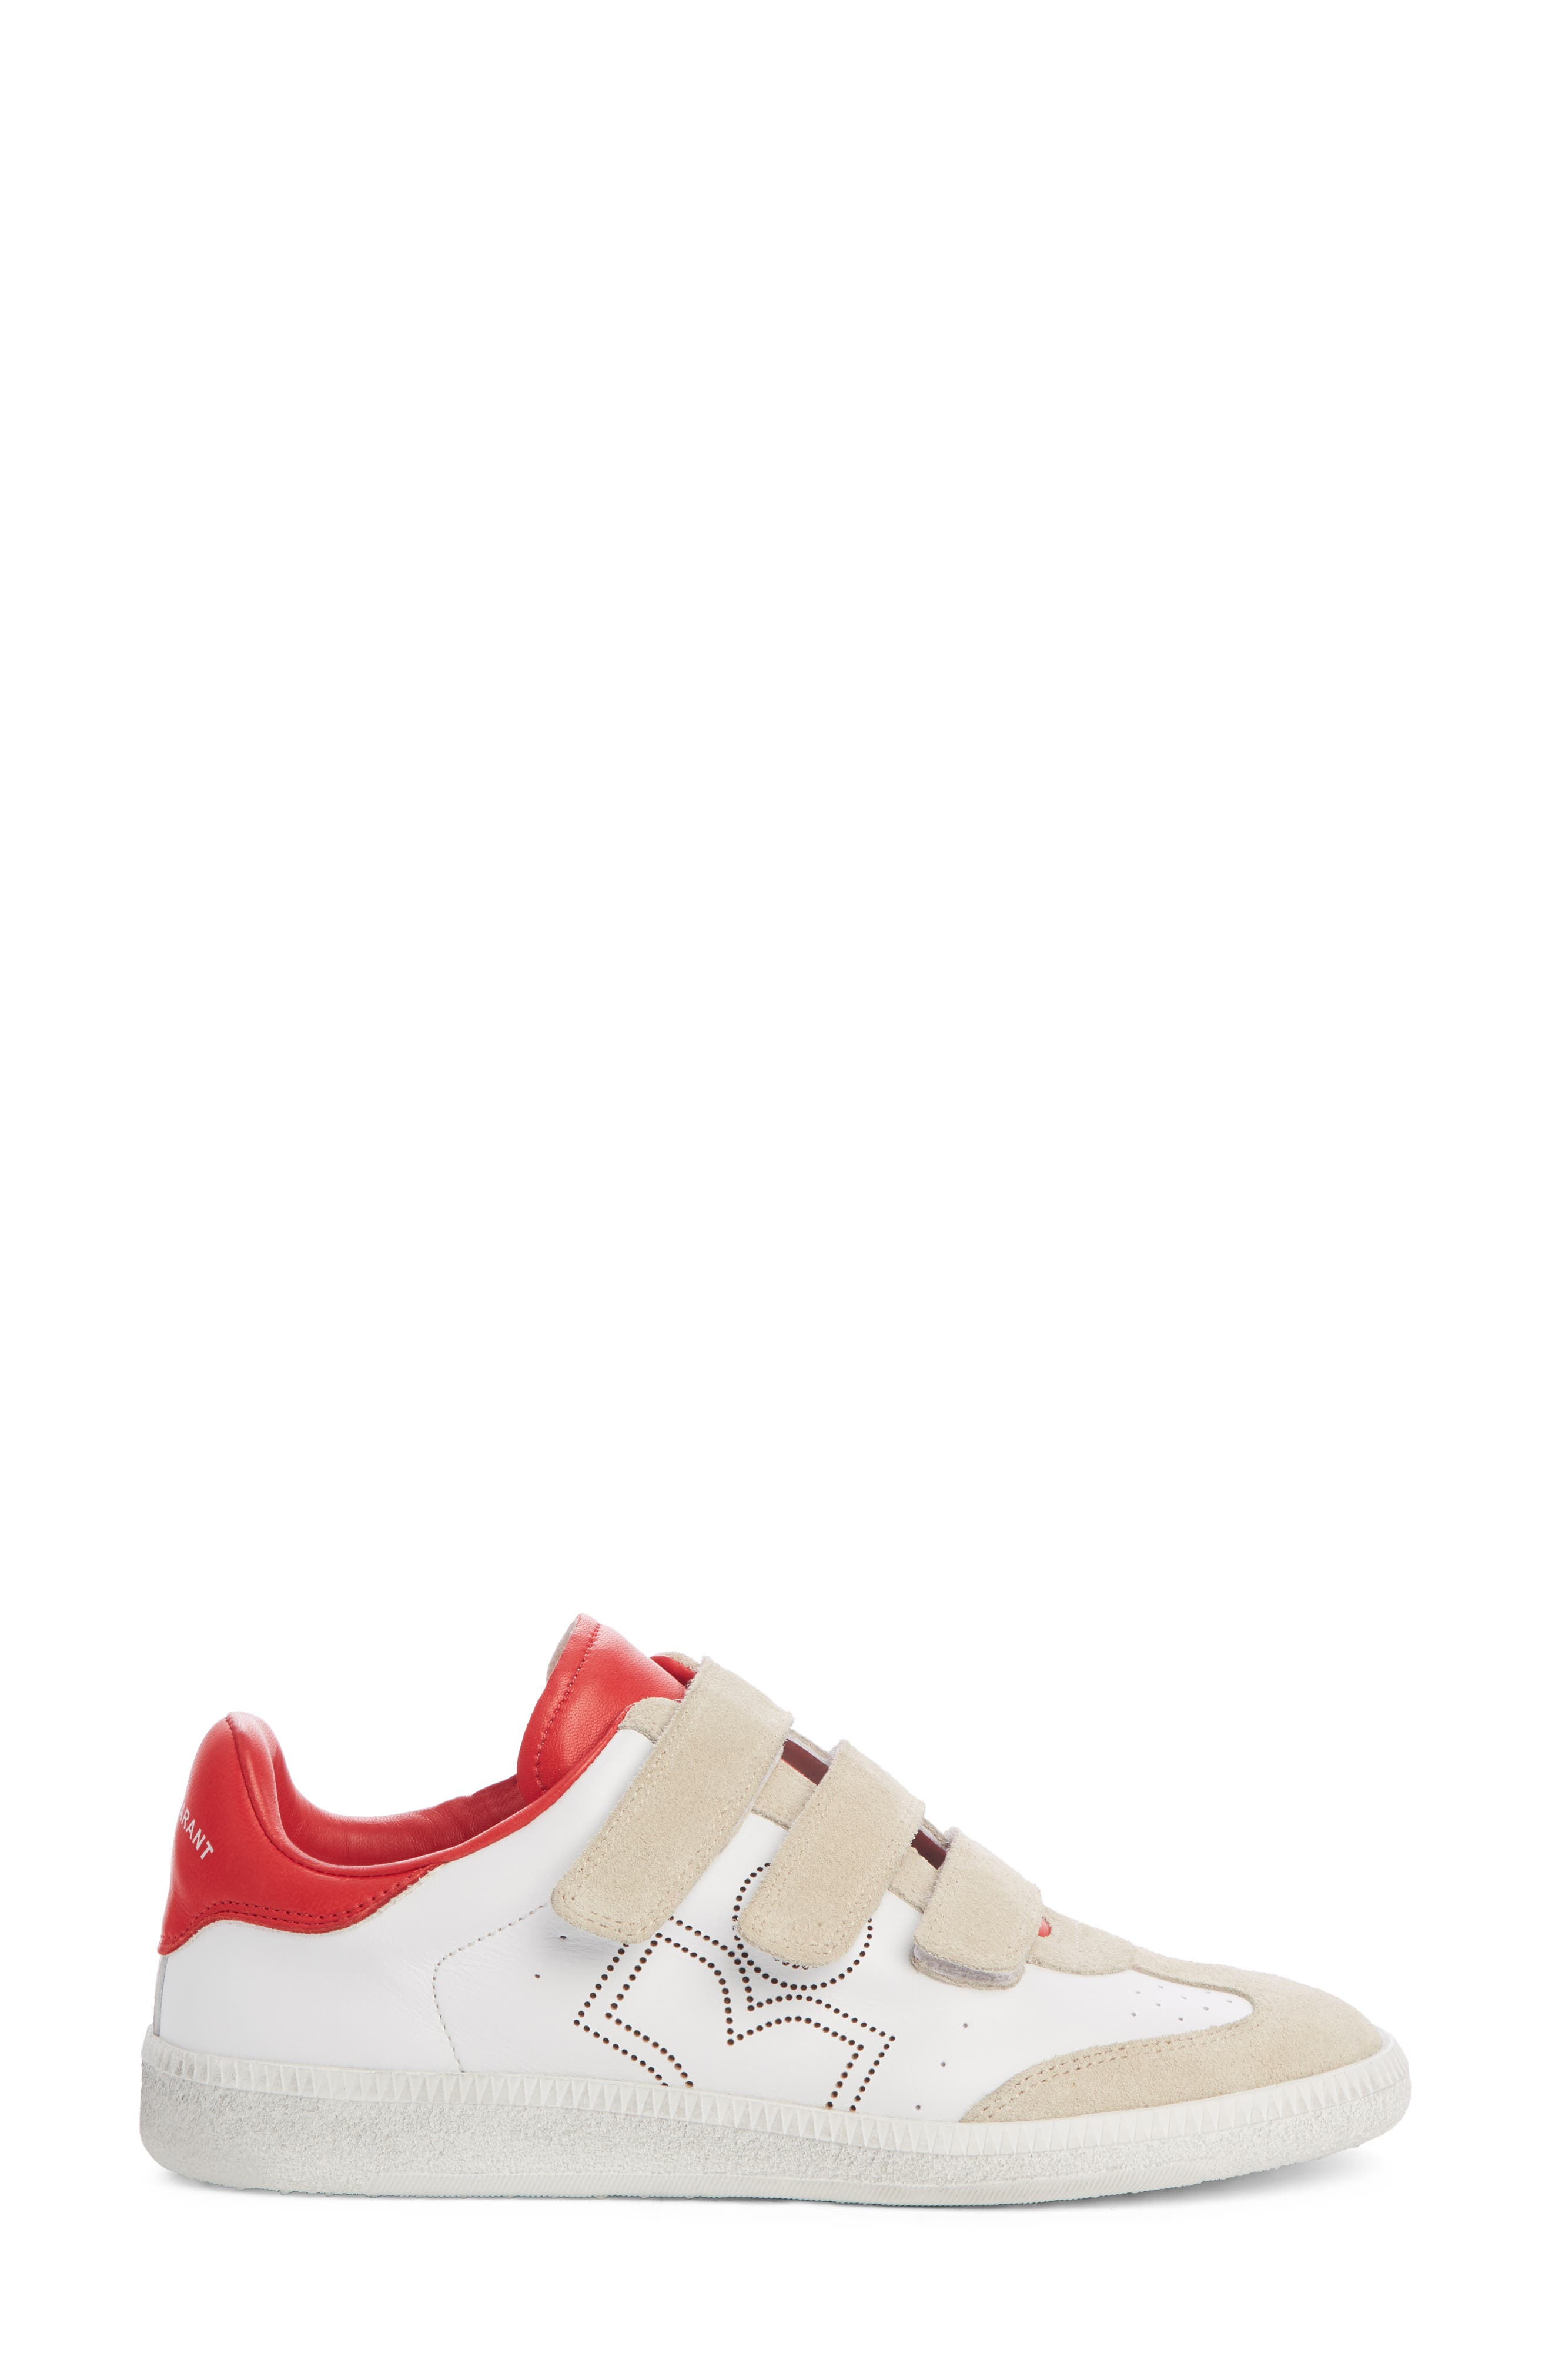 ISABEL MARANT,                             Beth Low Top Sneaker,                             Alternate thumbnail 3, color,                             WHITE / RED